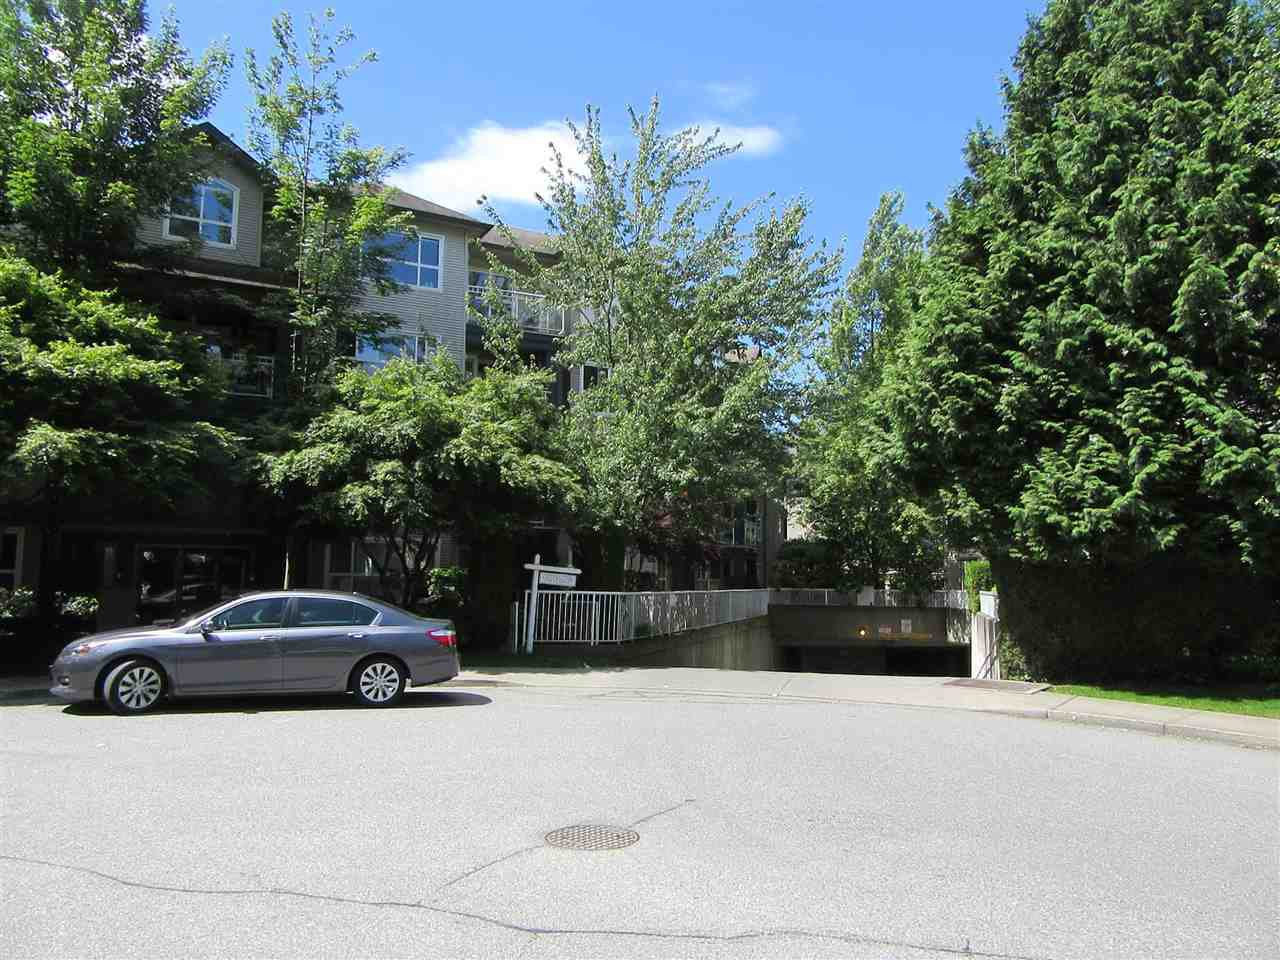 Main Photo: 302 8115 121A Street in Surrey: Queen Mary Park Surrey Condo for sale : MLS®# R2181096